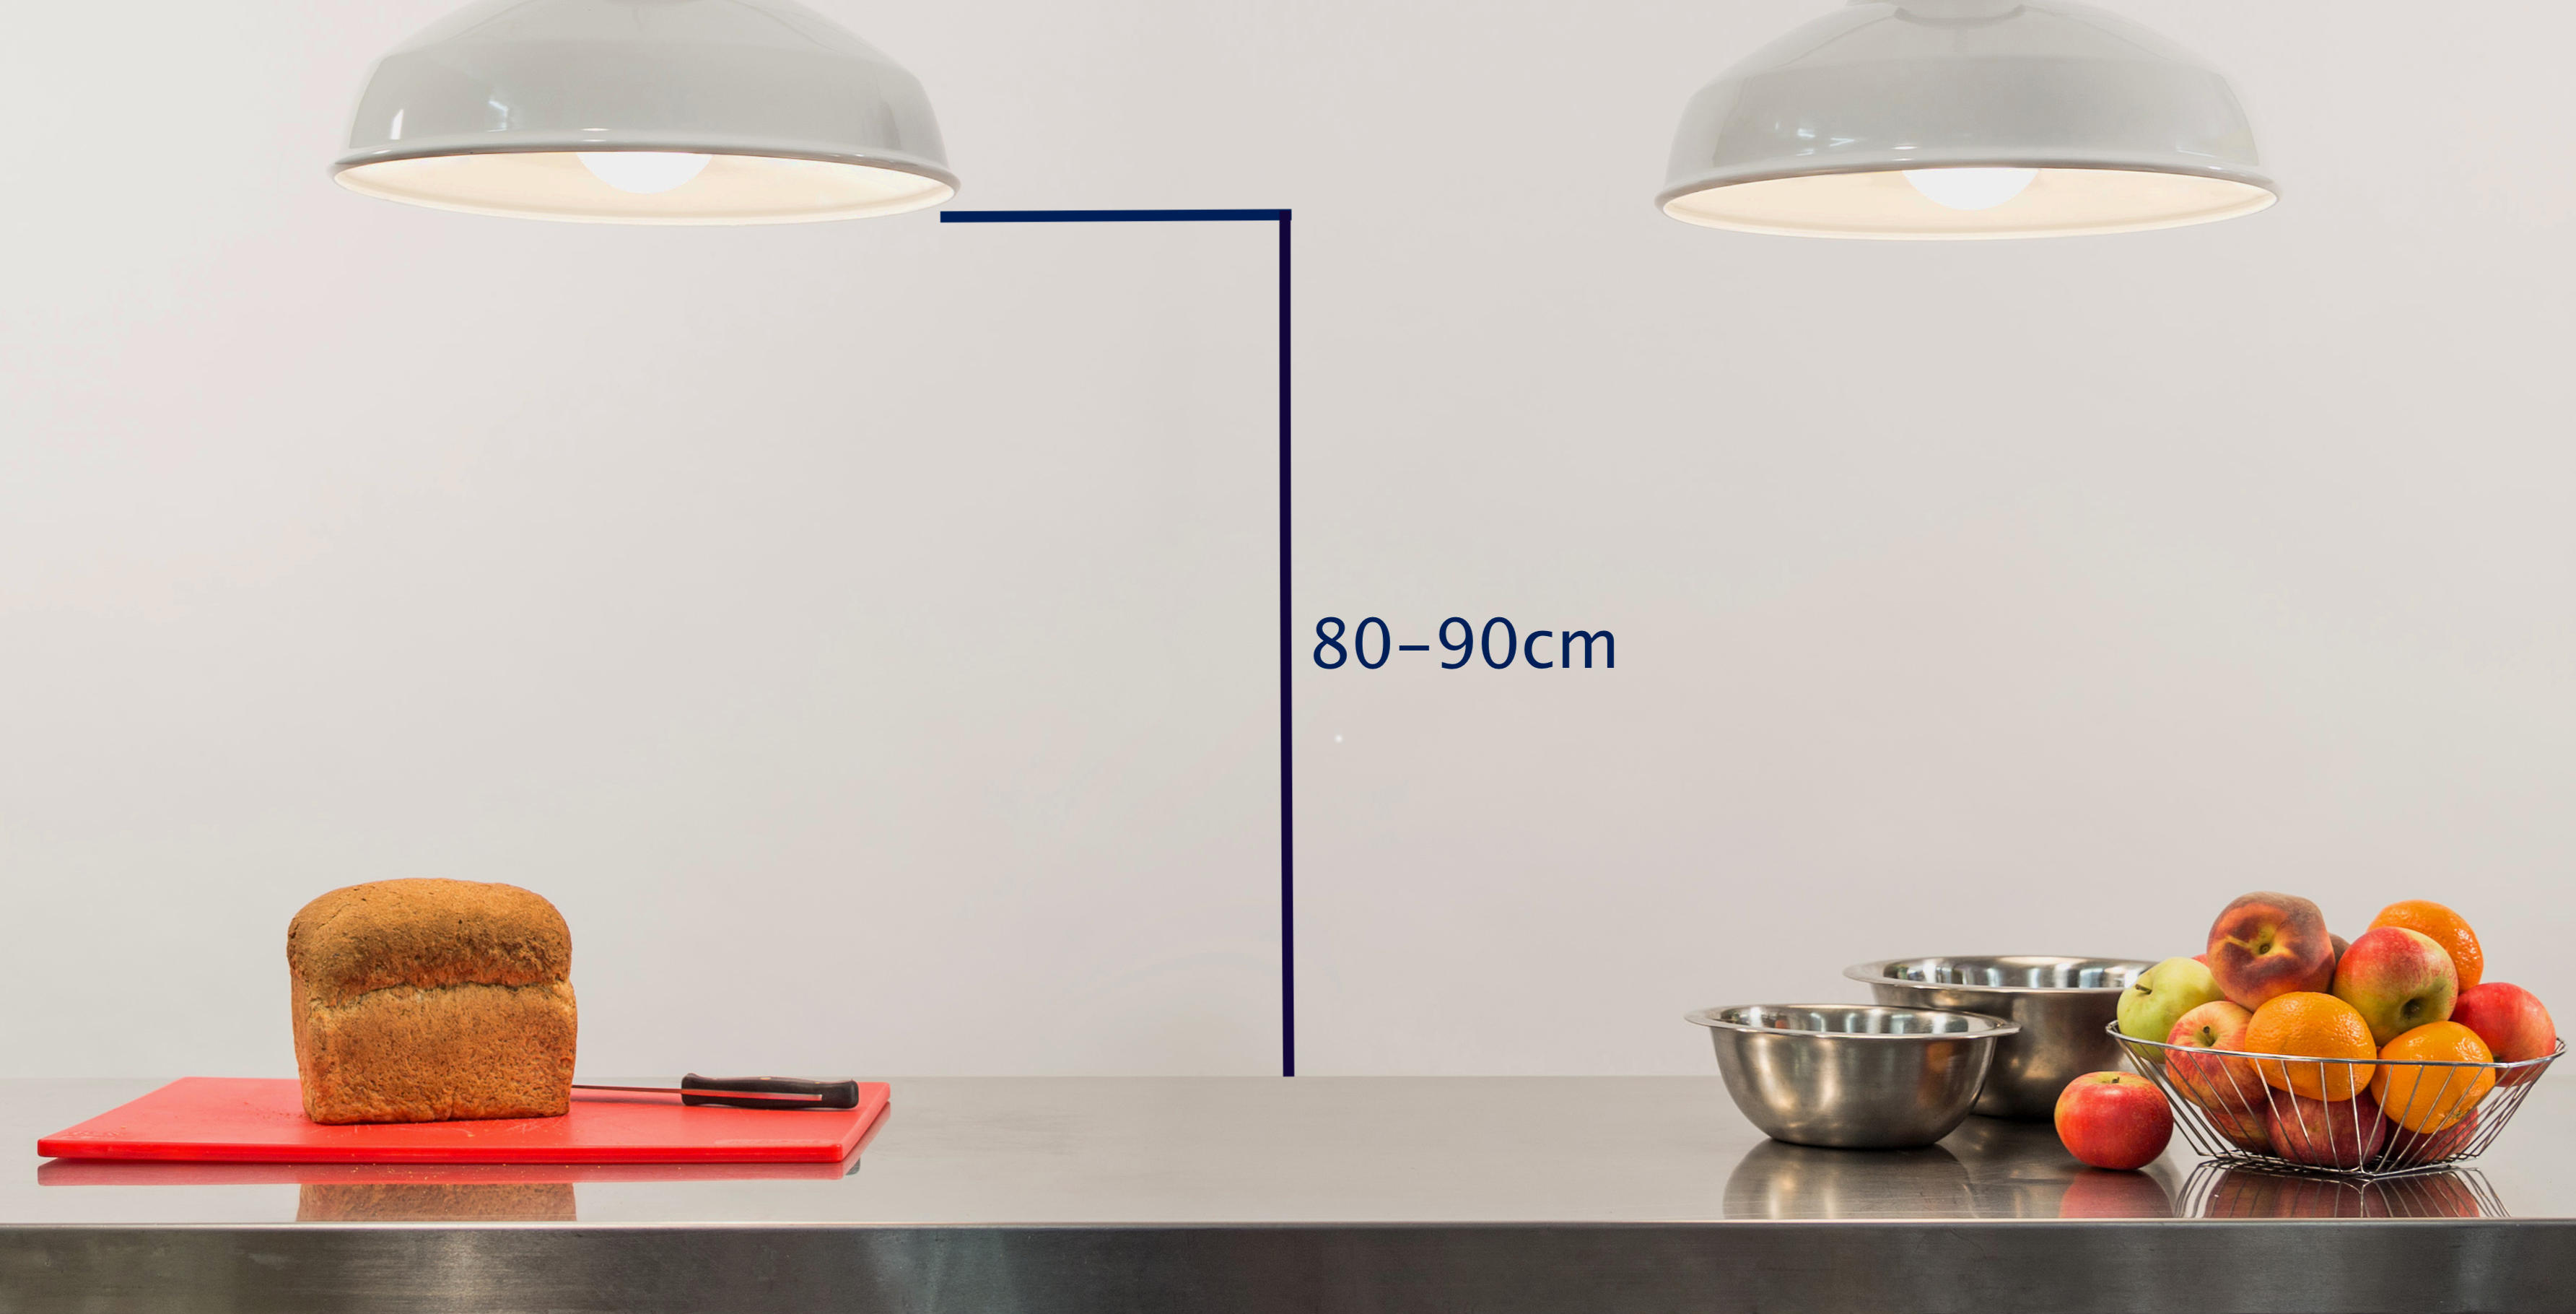 A pair of pendants lighting a kitchen island. A graphic indicates the advised height for such fixtures is between 80-90cm above the island surface.